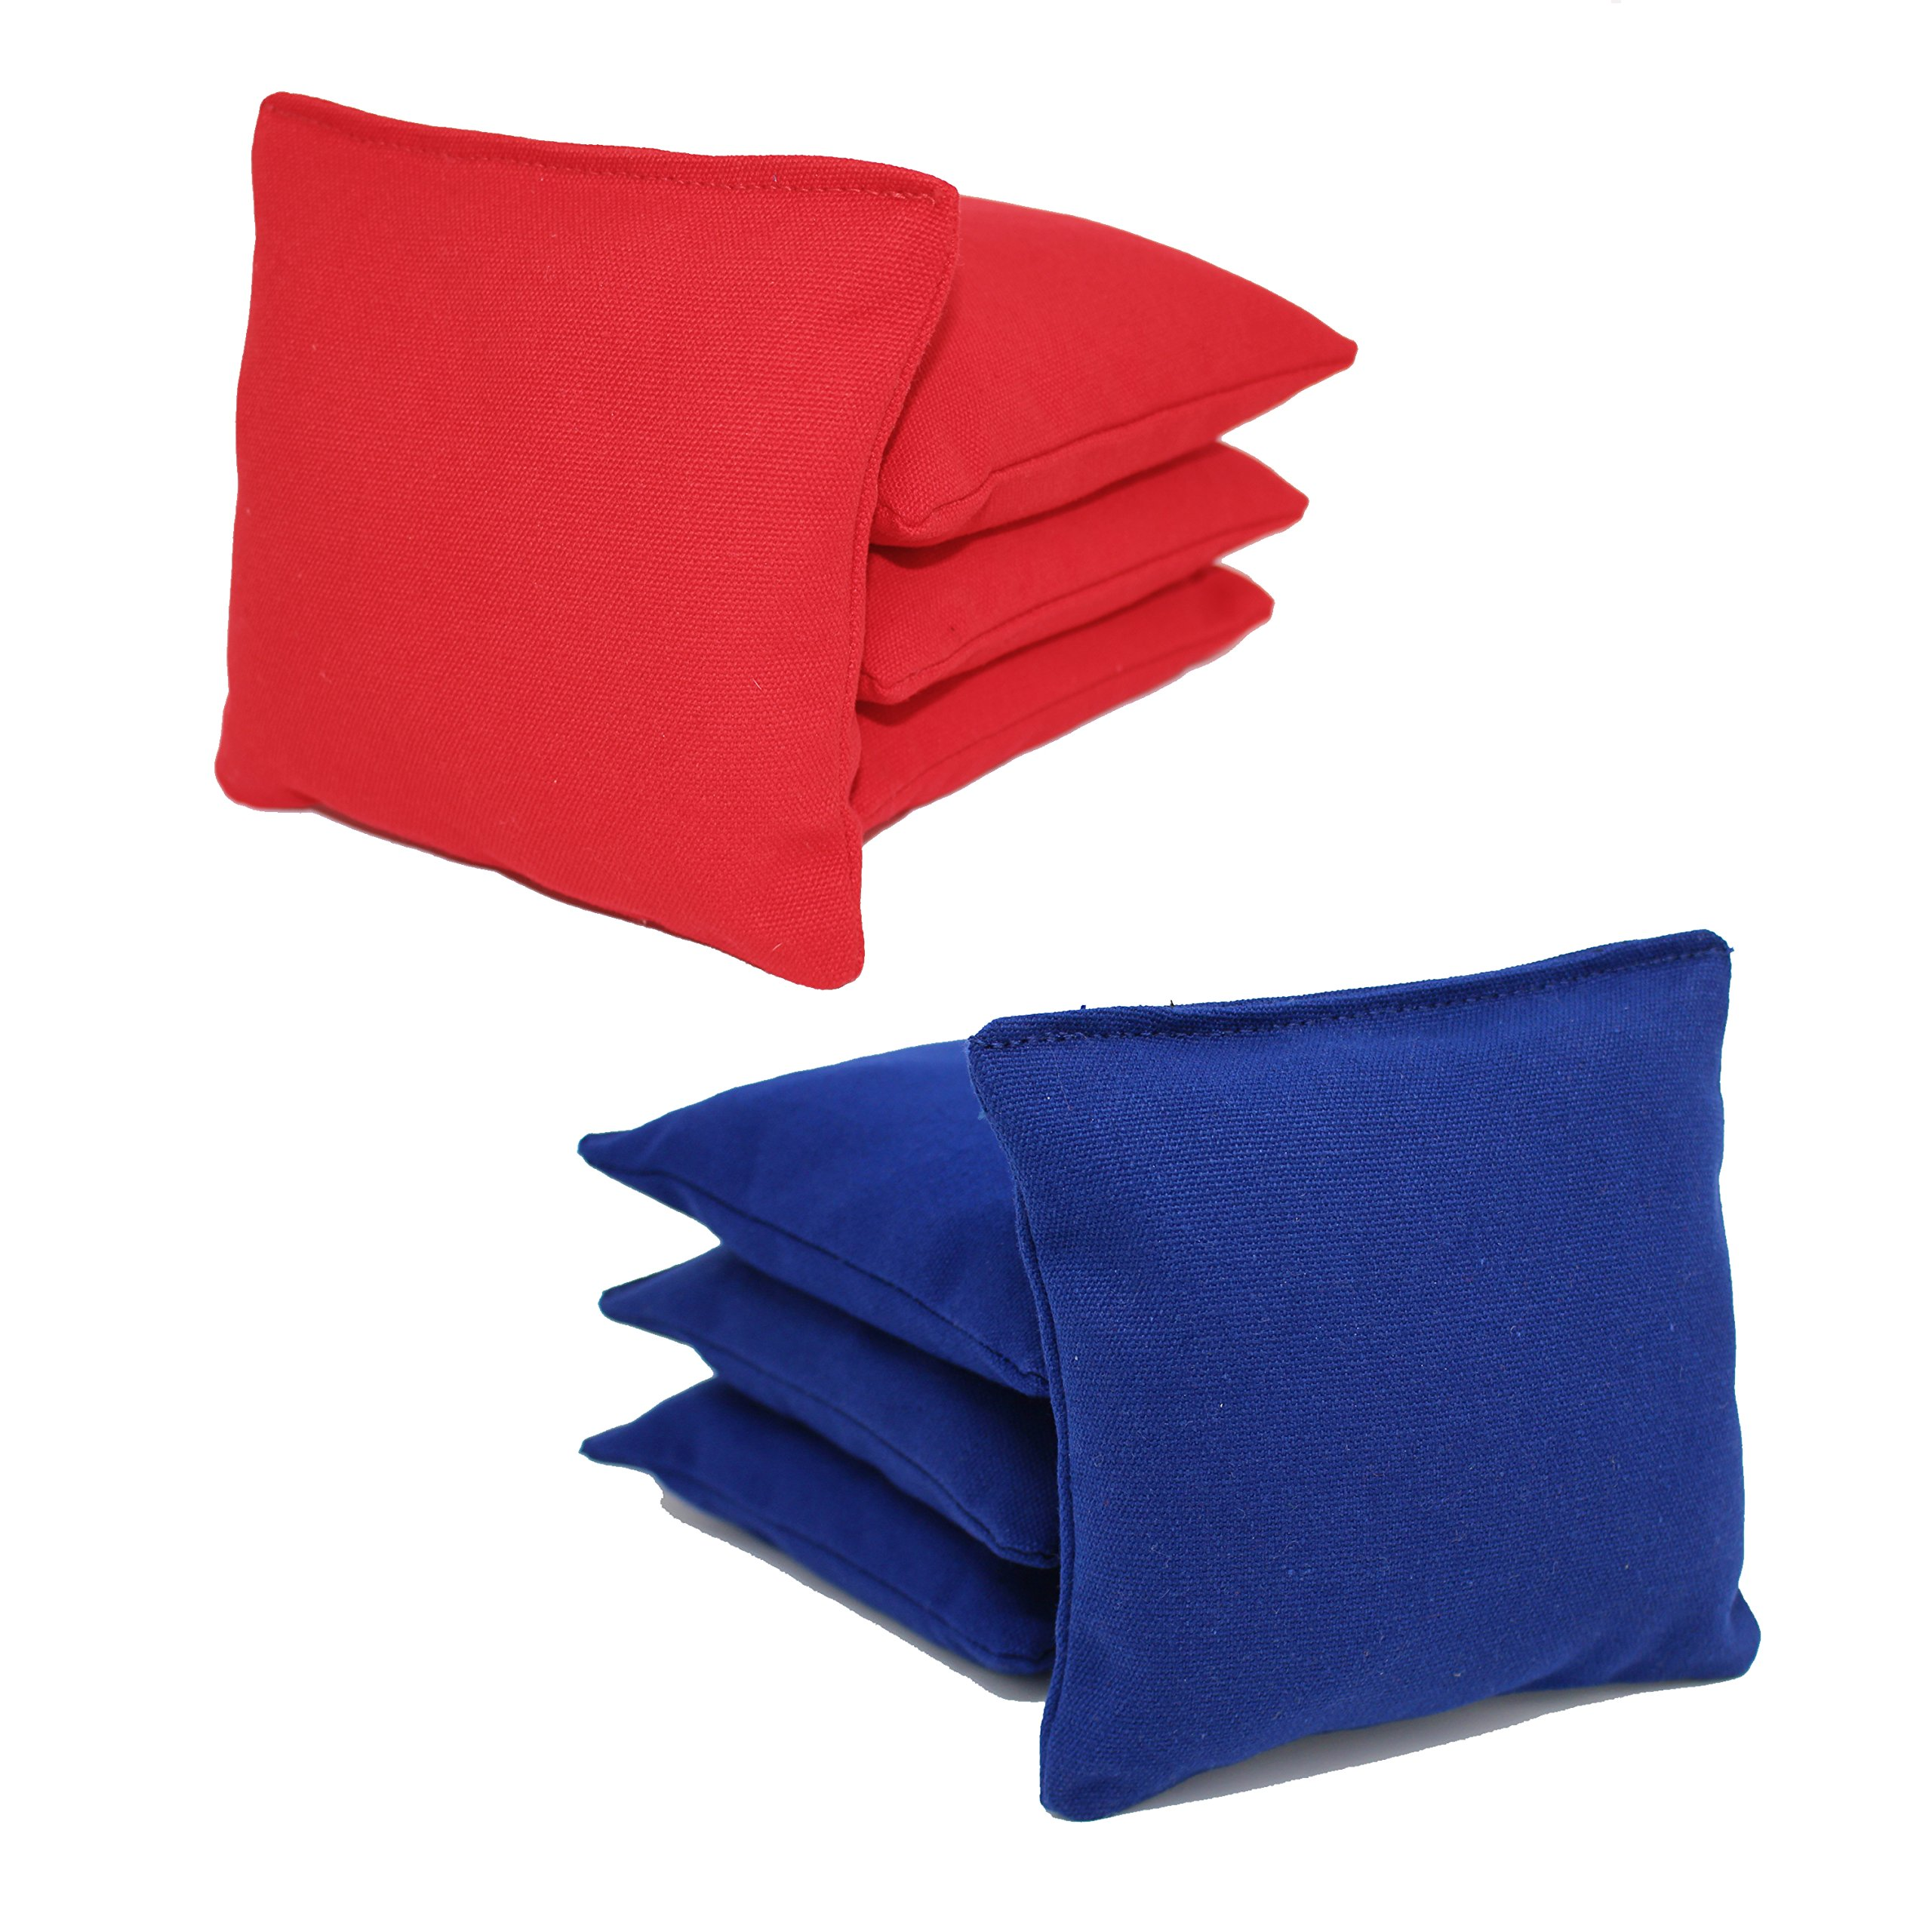 Free Donkey Sports ACA Regulation Cornhole Bags (Set of 8) (Royal and Red) 25 Colors to Choose from. by Free Donkey Sports